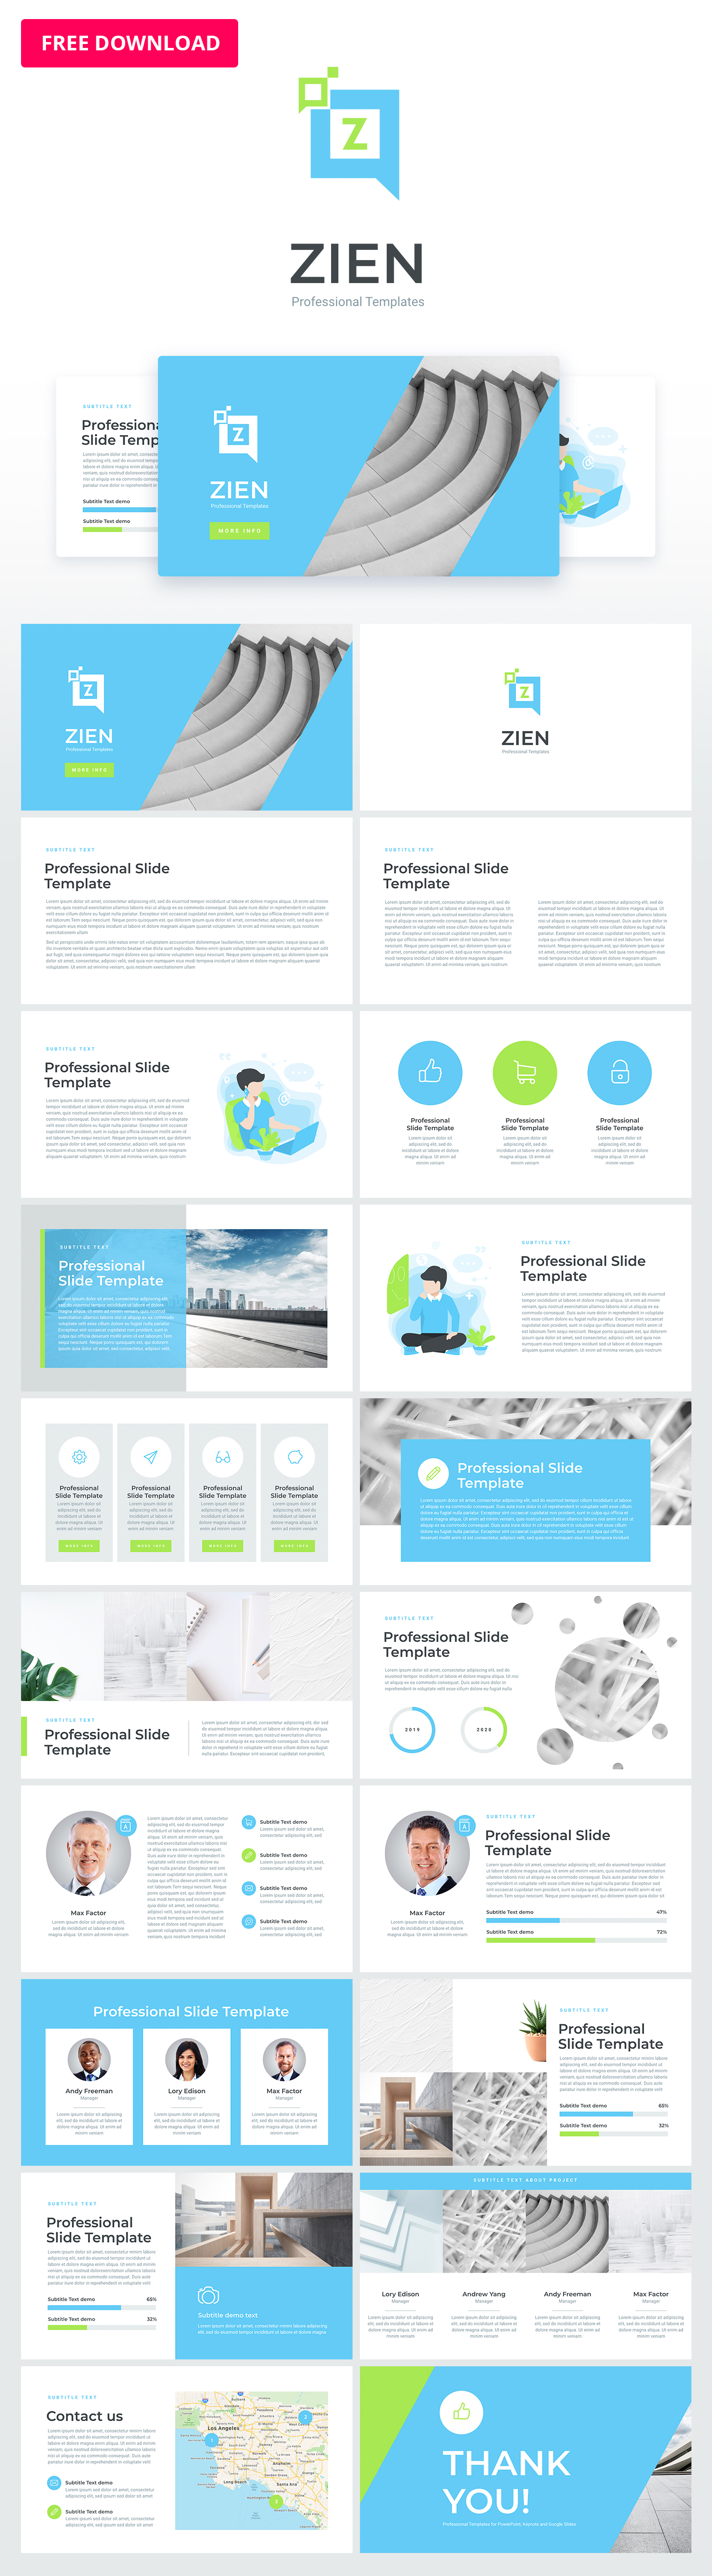 zien animated powerpoint template